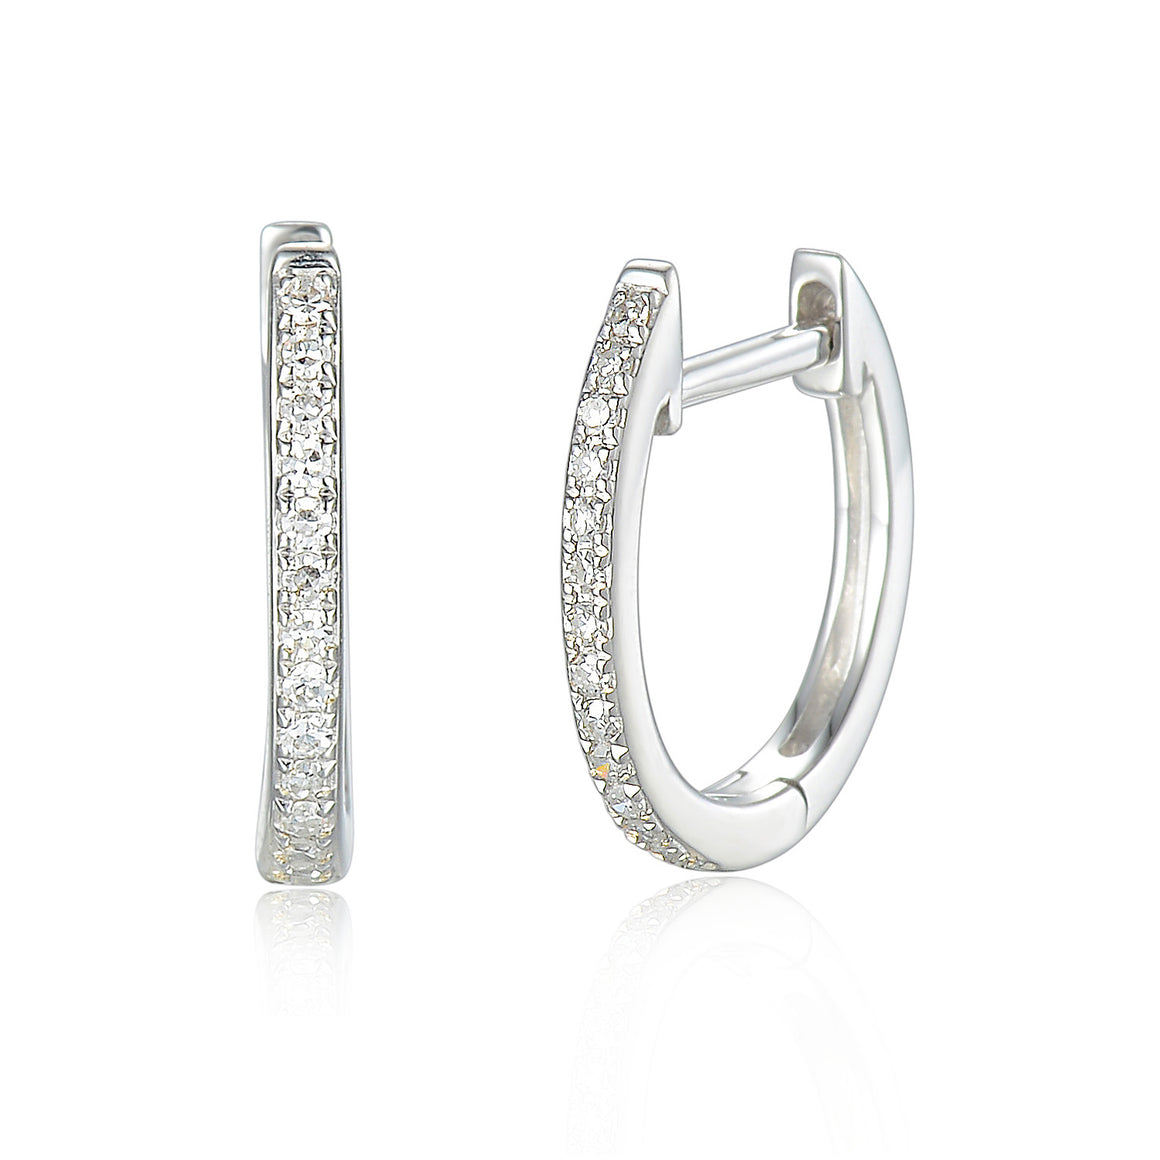 18ct White Gold Diamond Sleeper Hoop With Hanging Interchangeable Square Charm